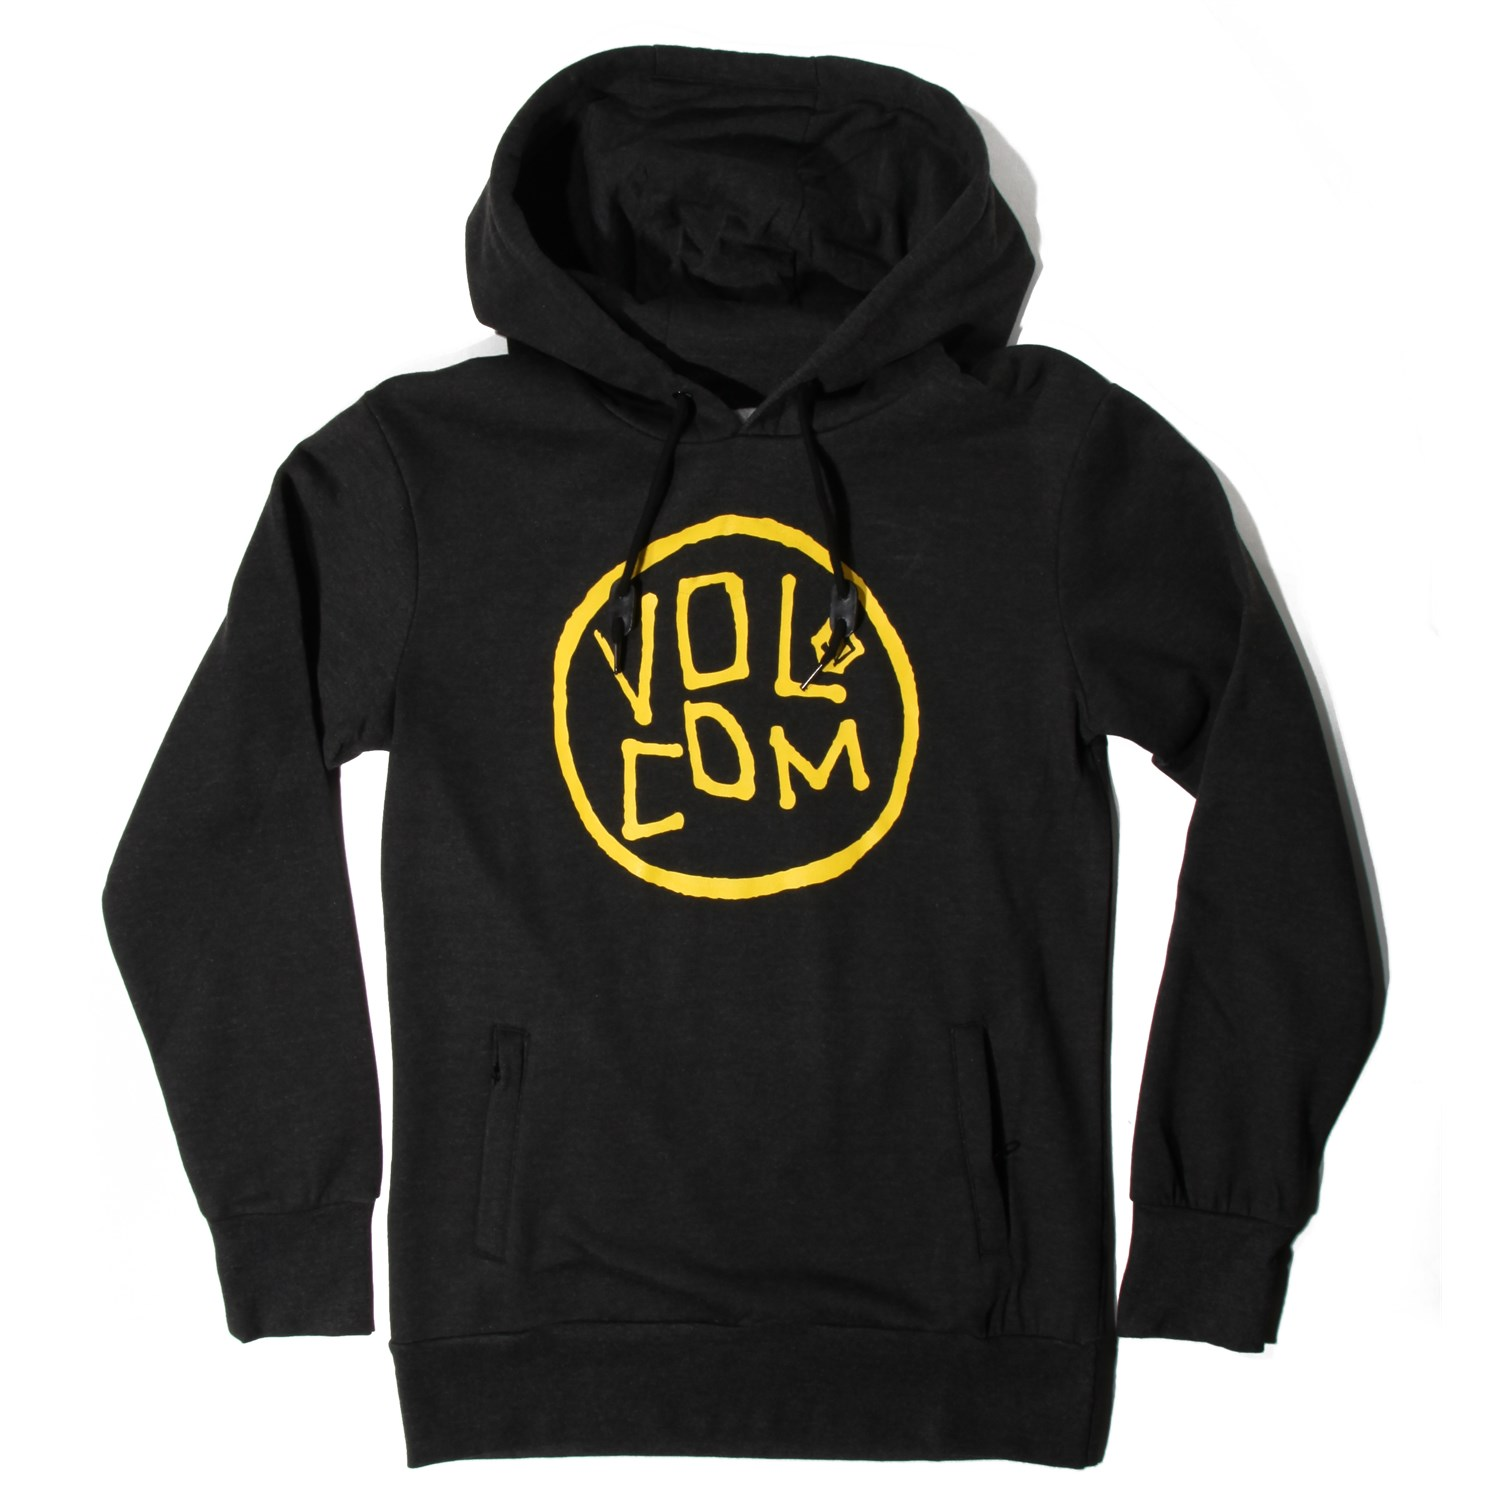 Volcom Technical Hoodies | evo outlet